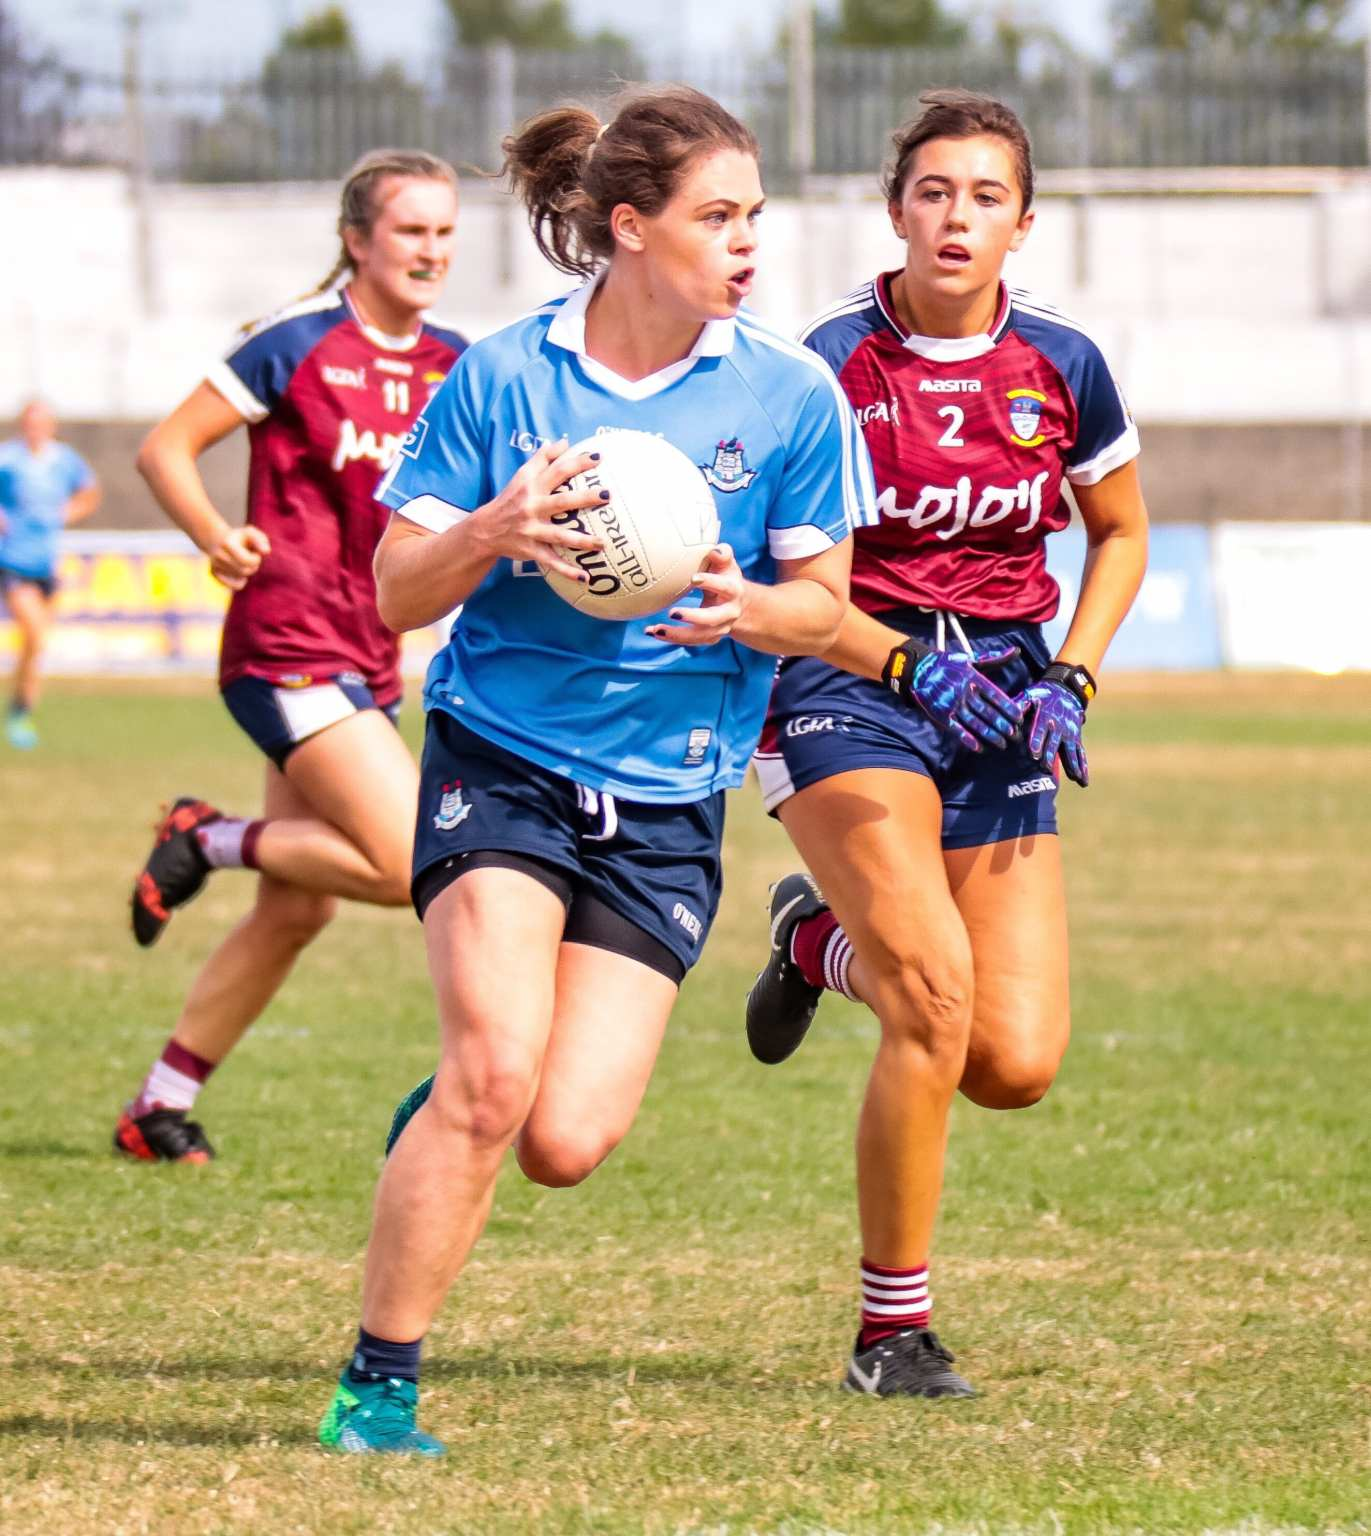 Dublin Ladies footballer break away with the ball from a Westmeath player during the Leinster Final, the LGFA Have confirmed there will be Live Coverage of this year's final streamed on Facebook.